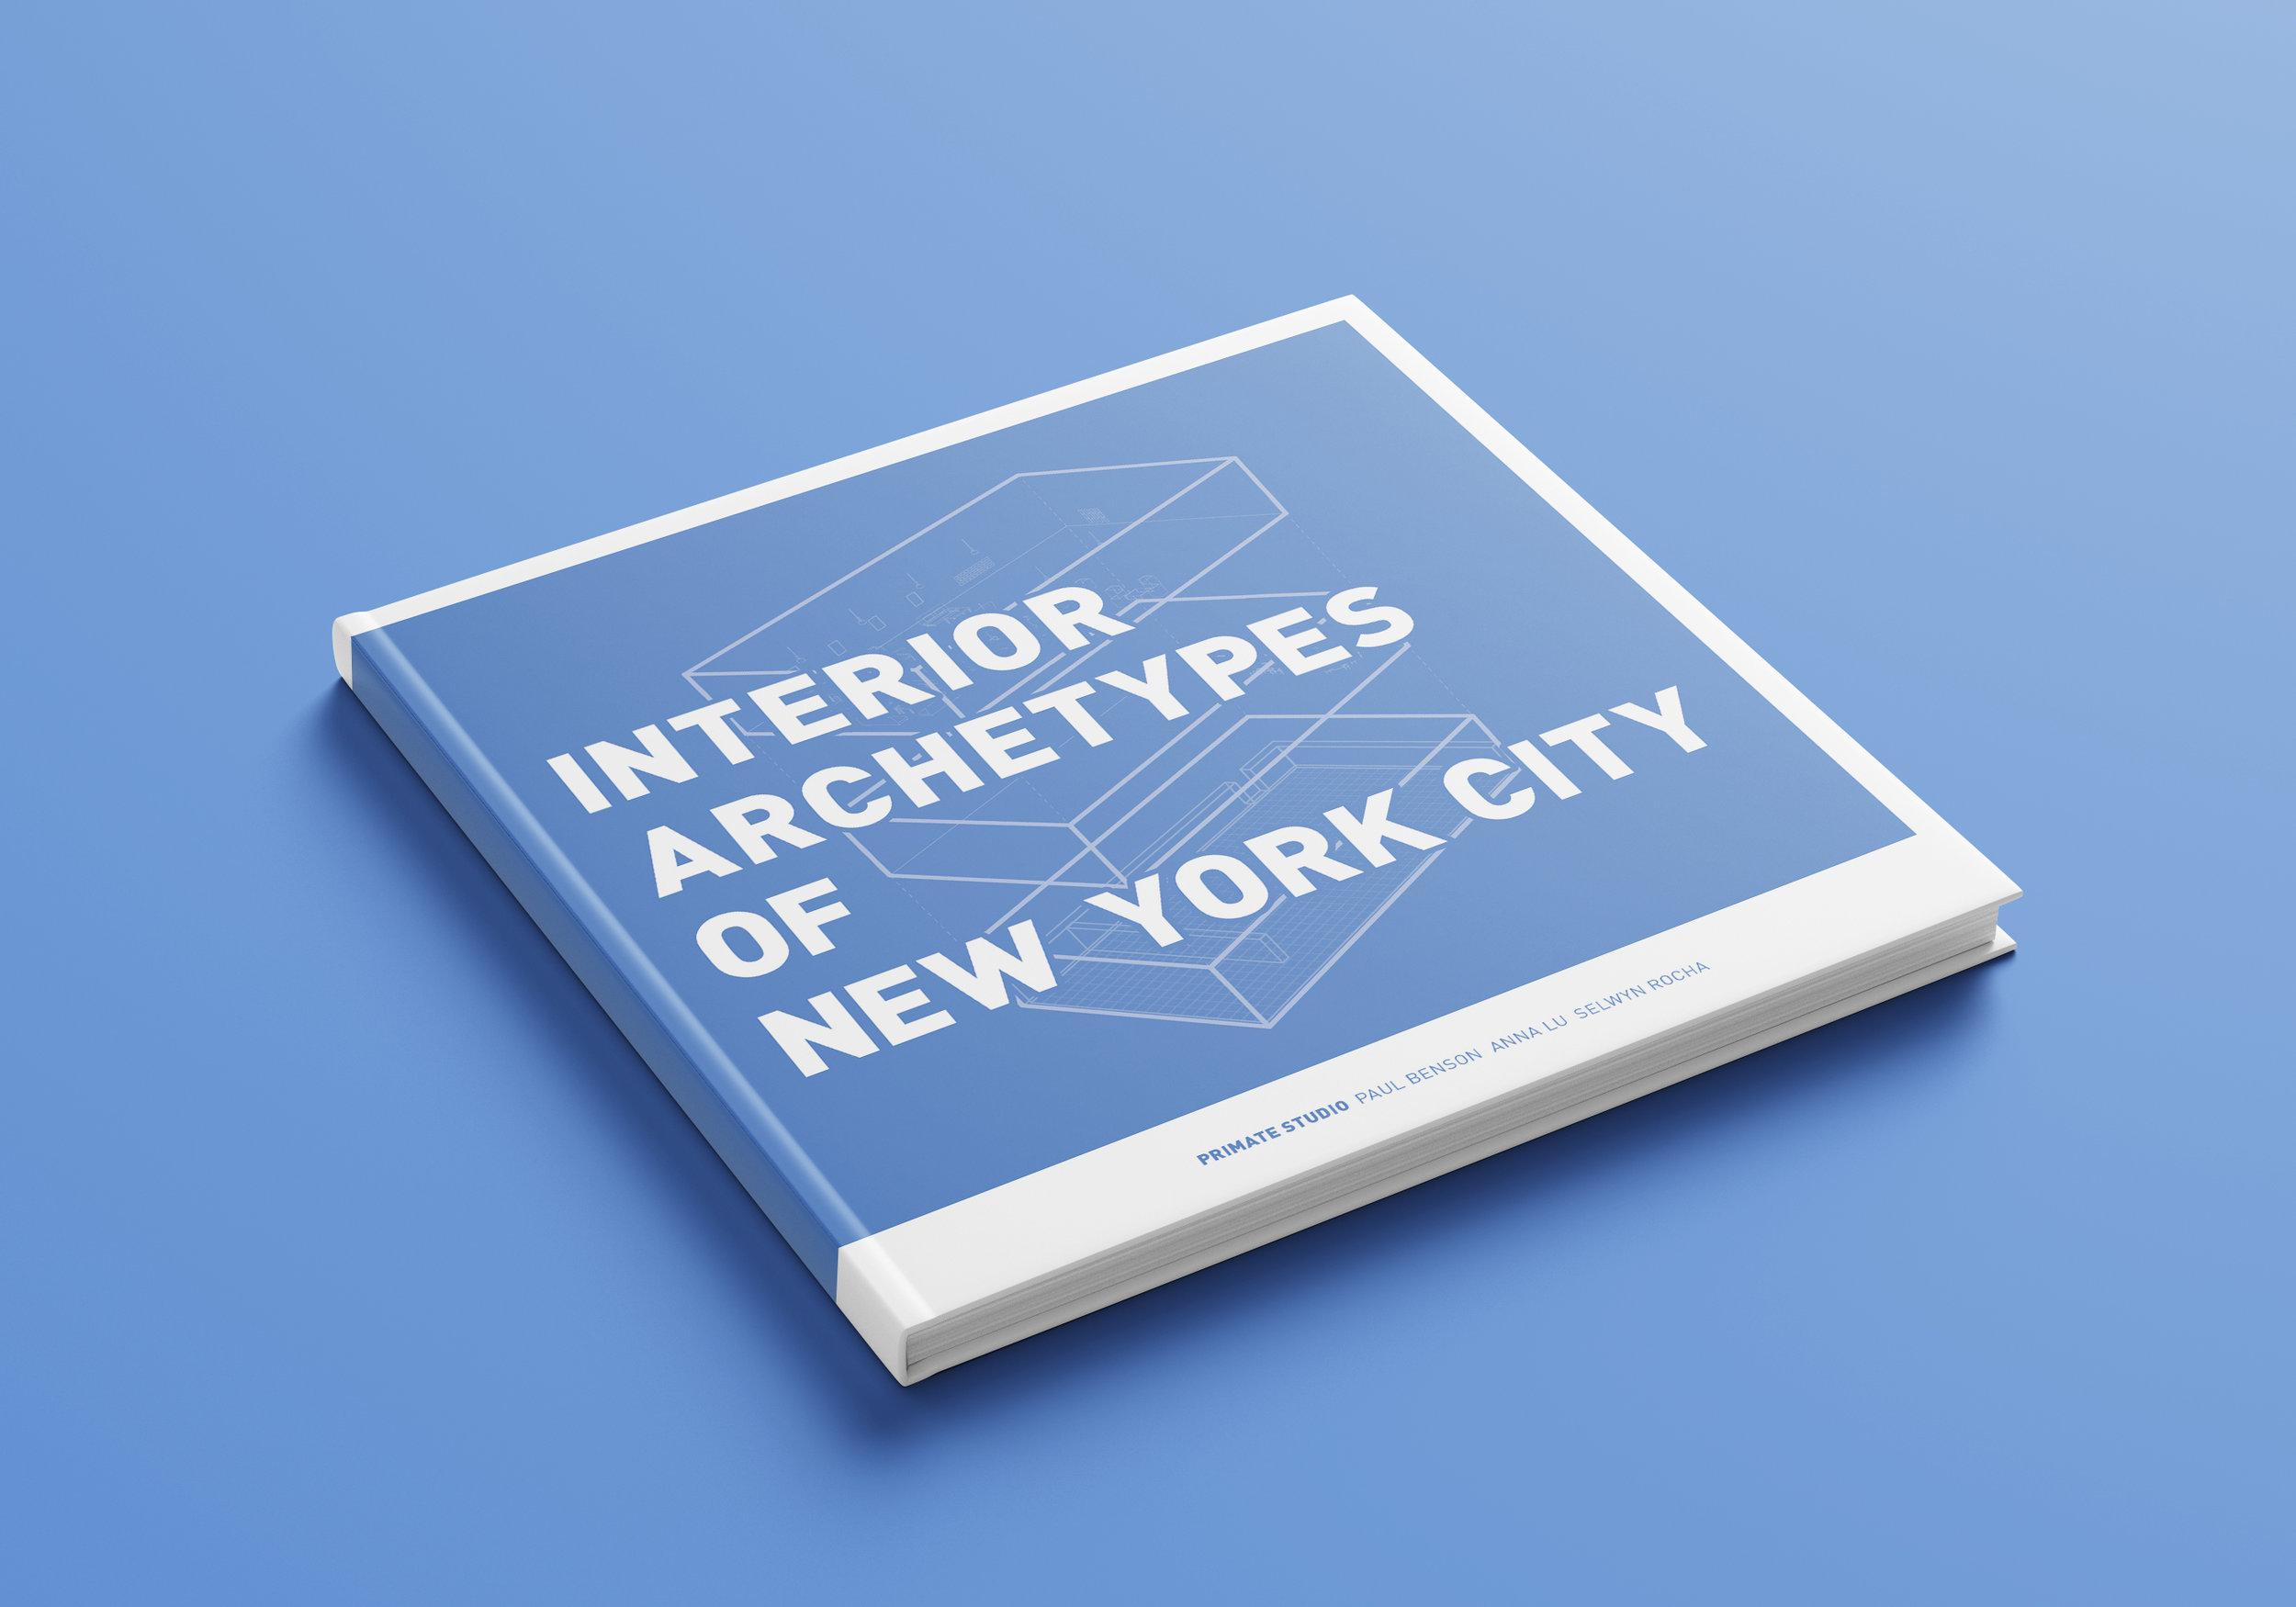 Interior Archetypes of New York City - Experiment No.02 -A project documenting iconic spaces of NYC